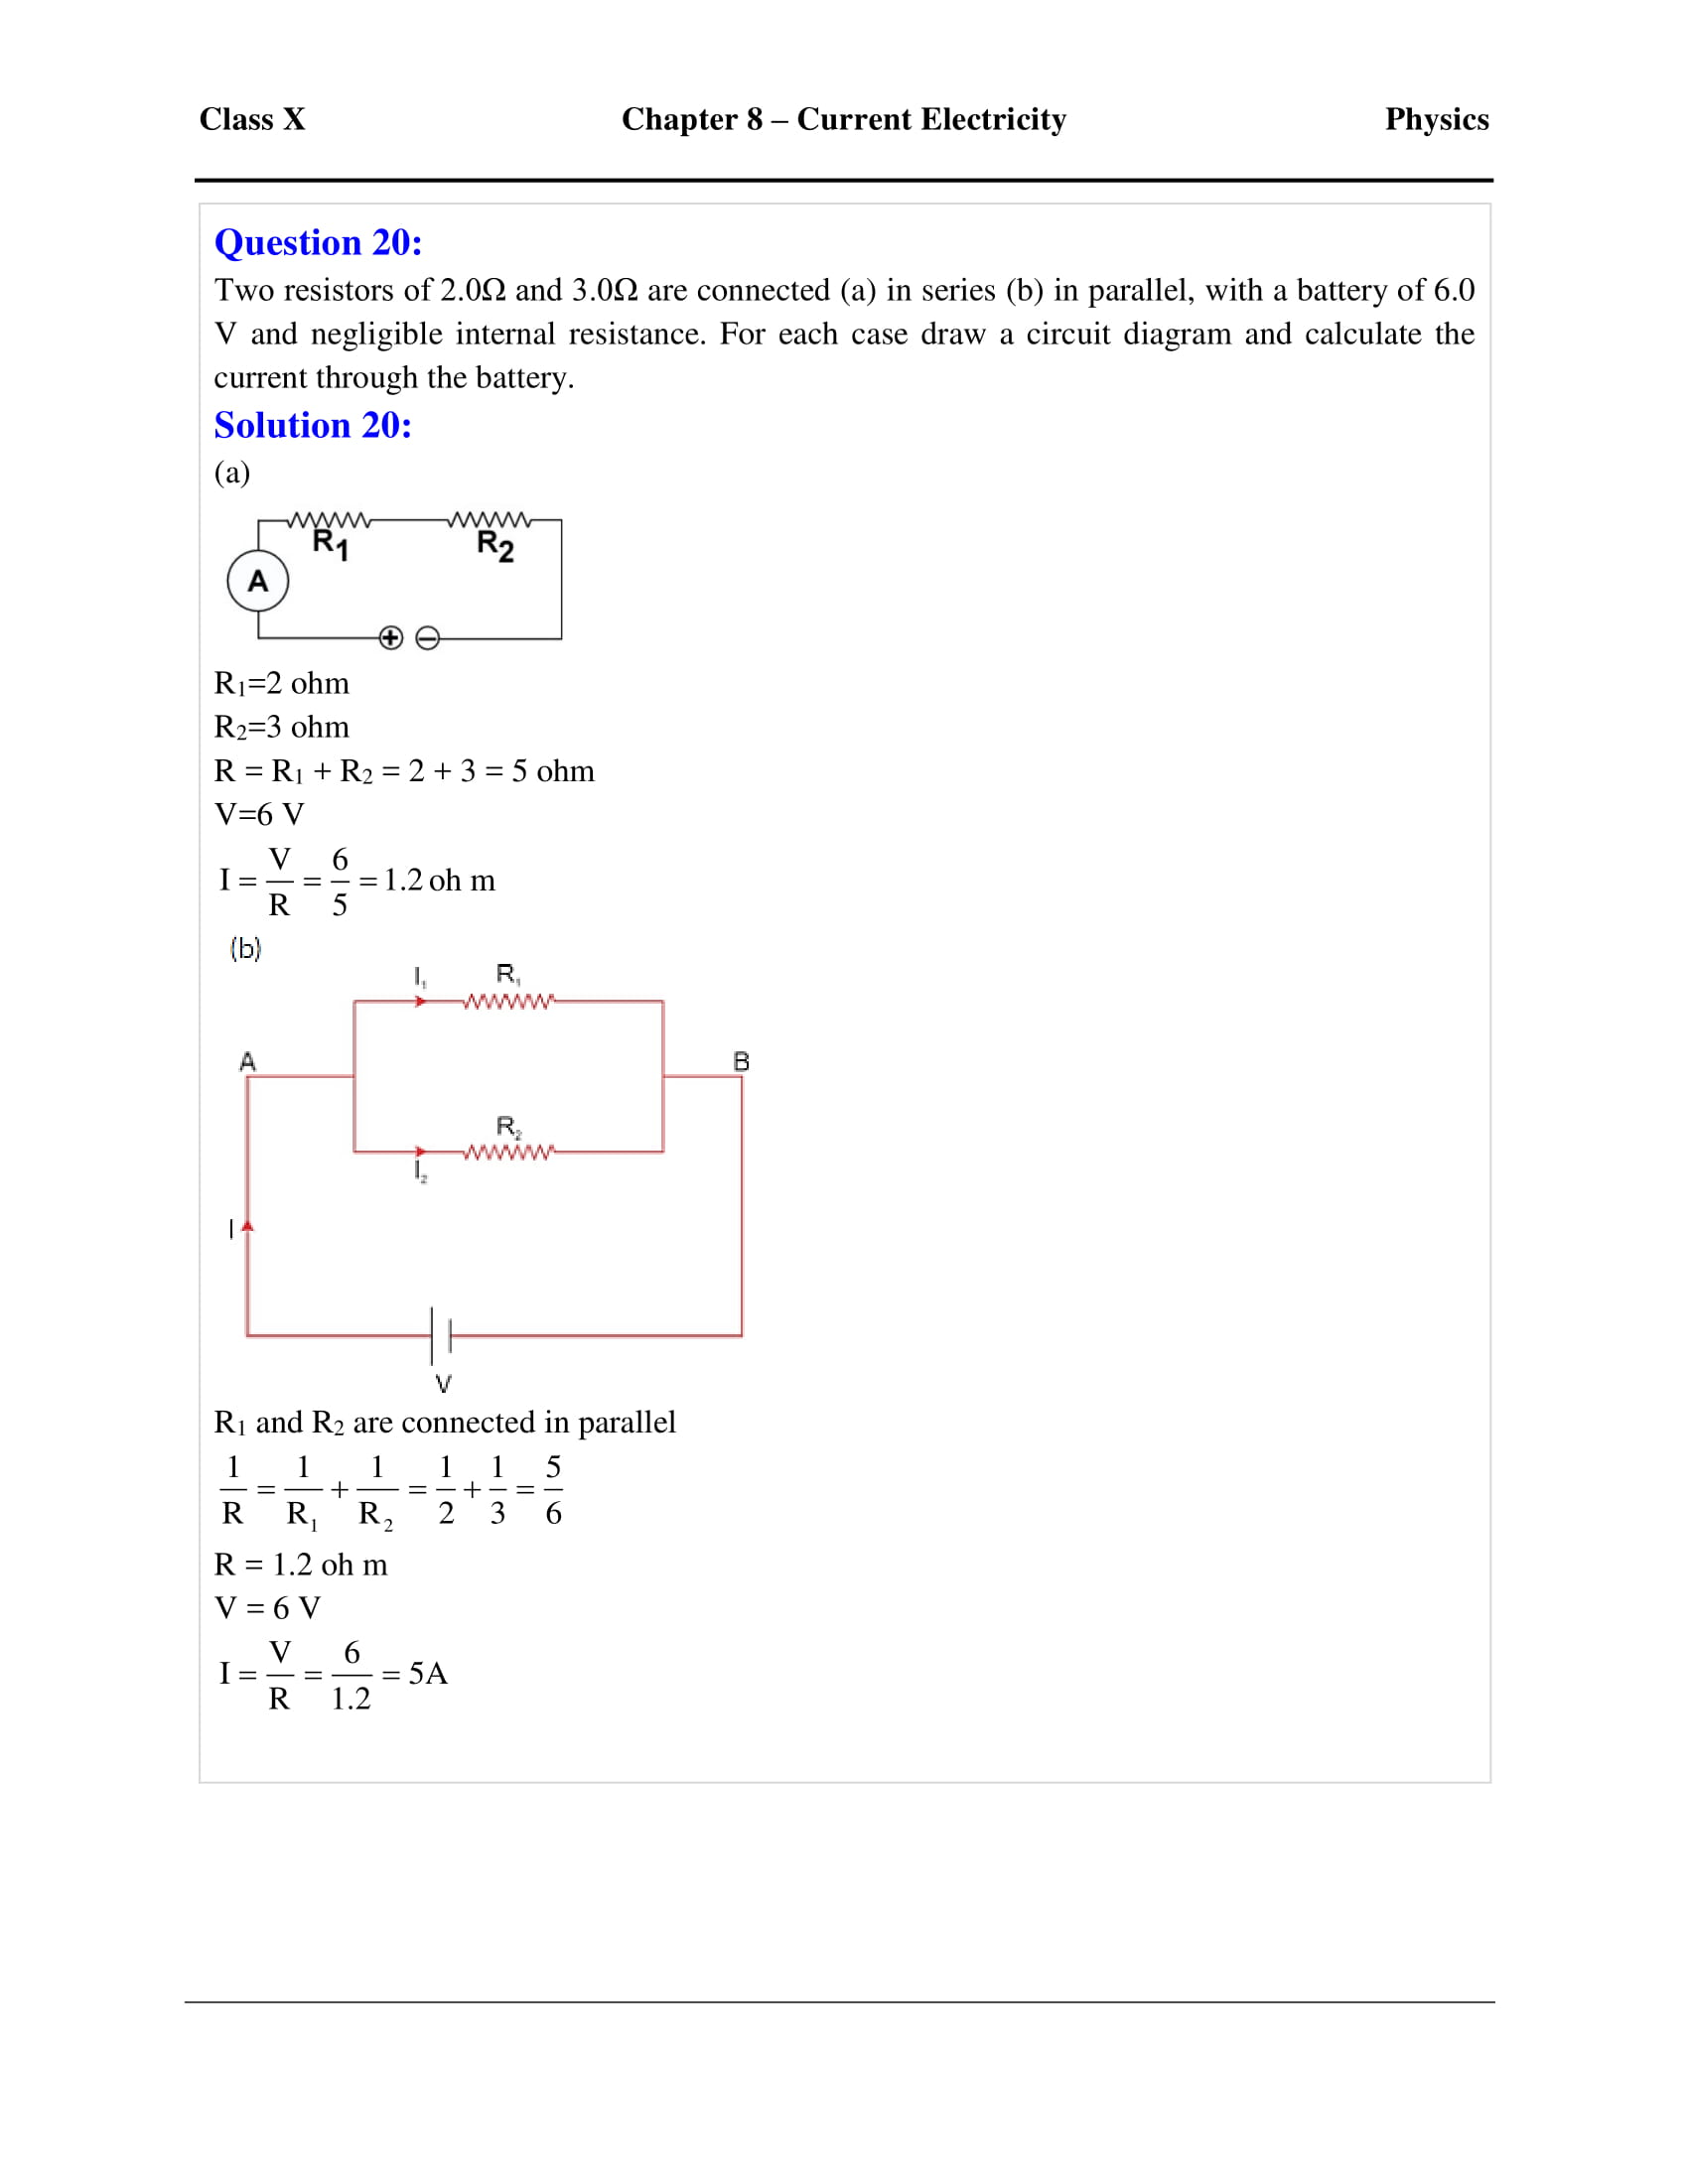 icse-selina-physics-solutions-class-10-chapter-8-current-electricity-33